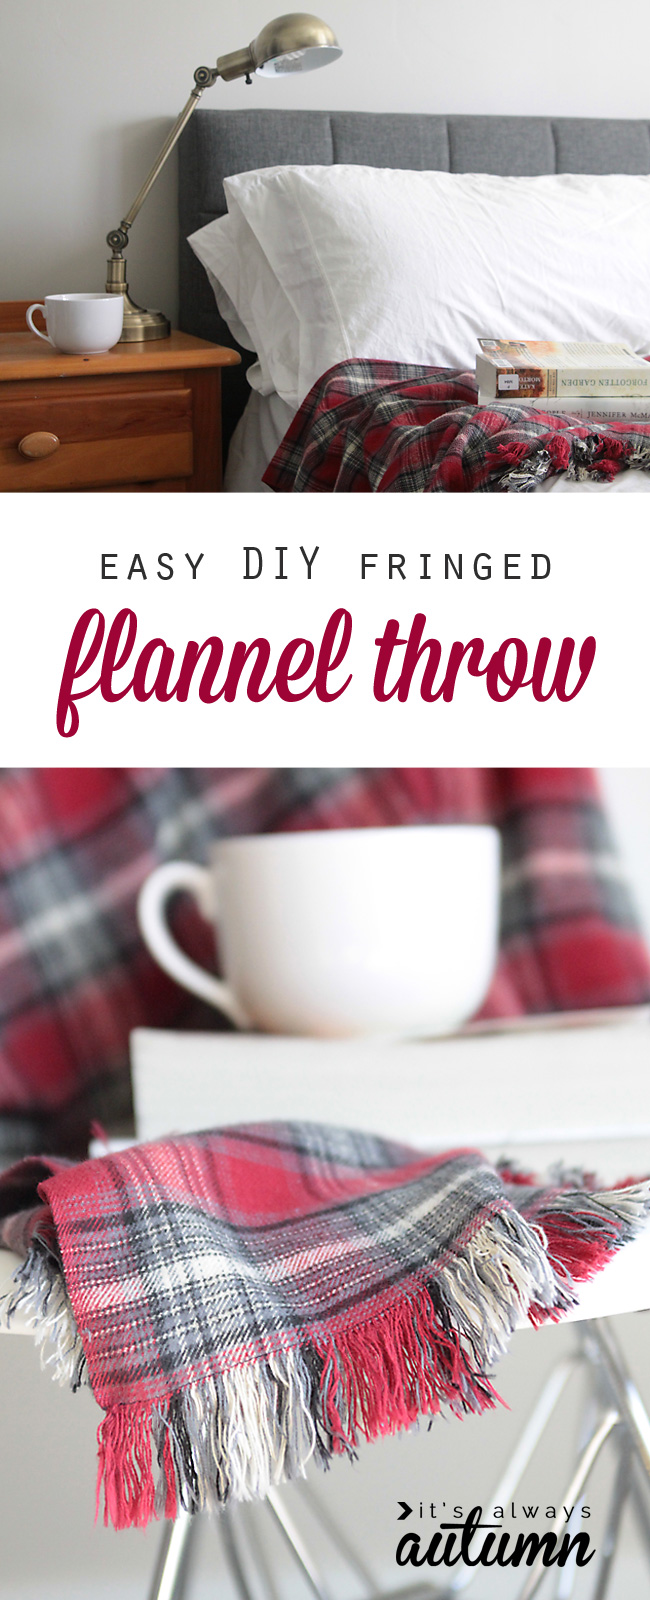 DIY Easy Flannel Throw Blanket